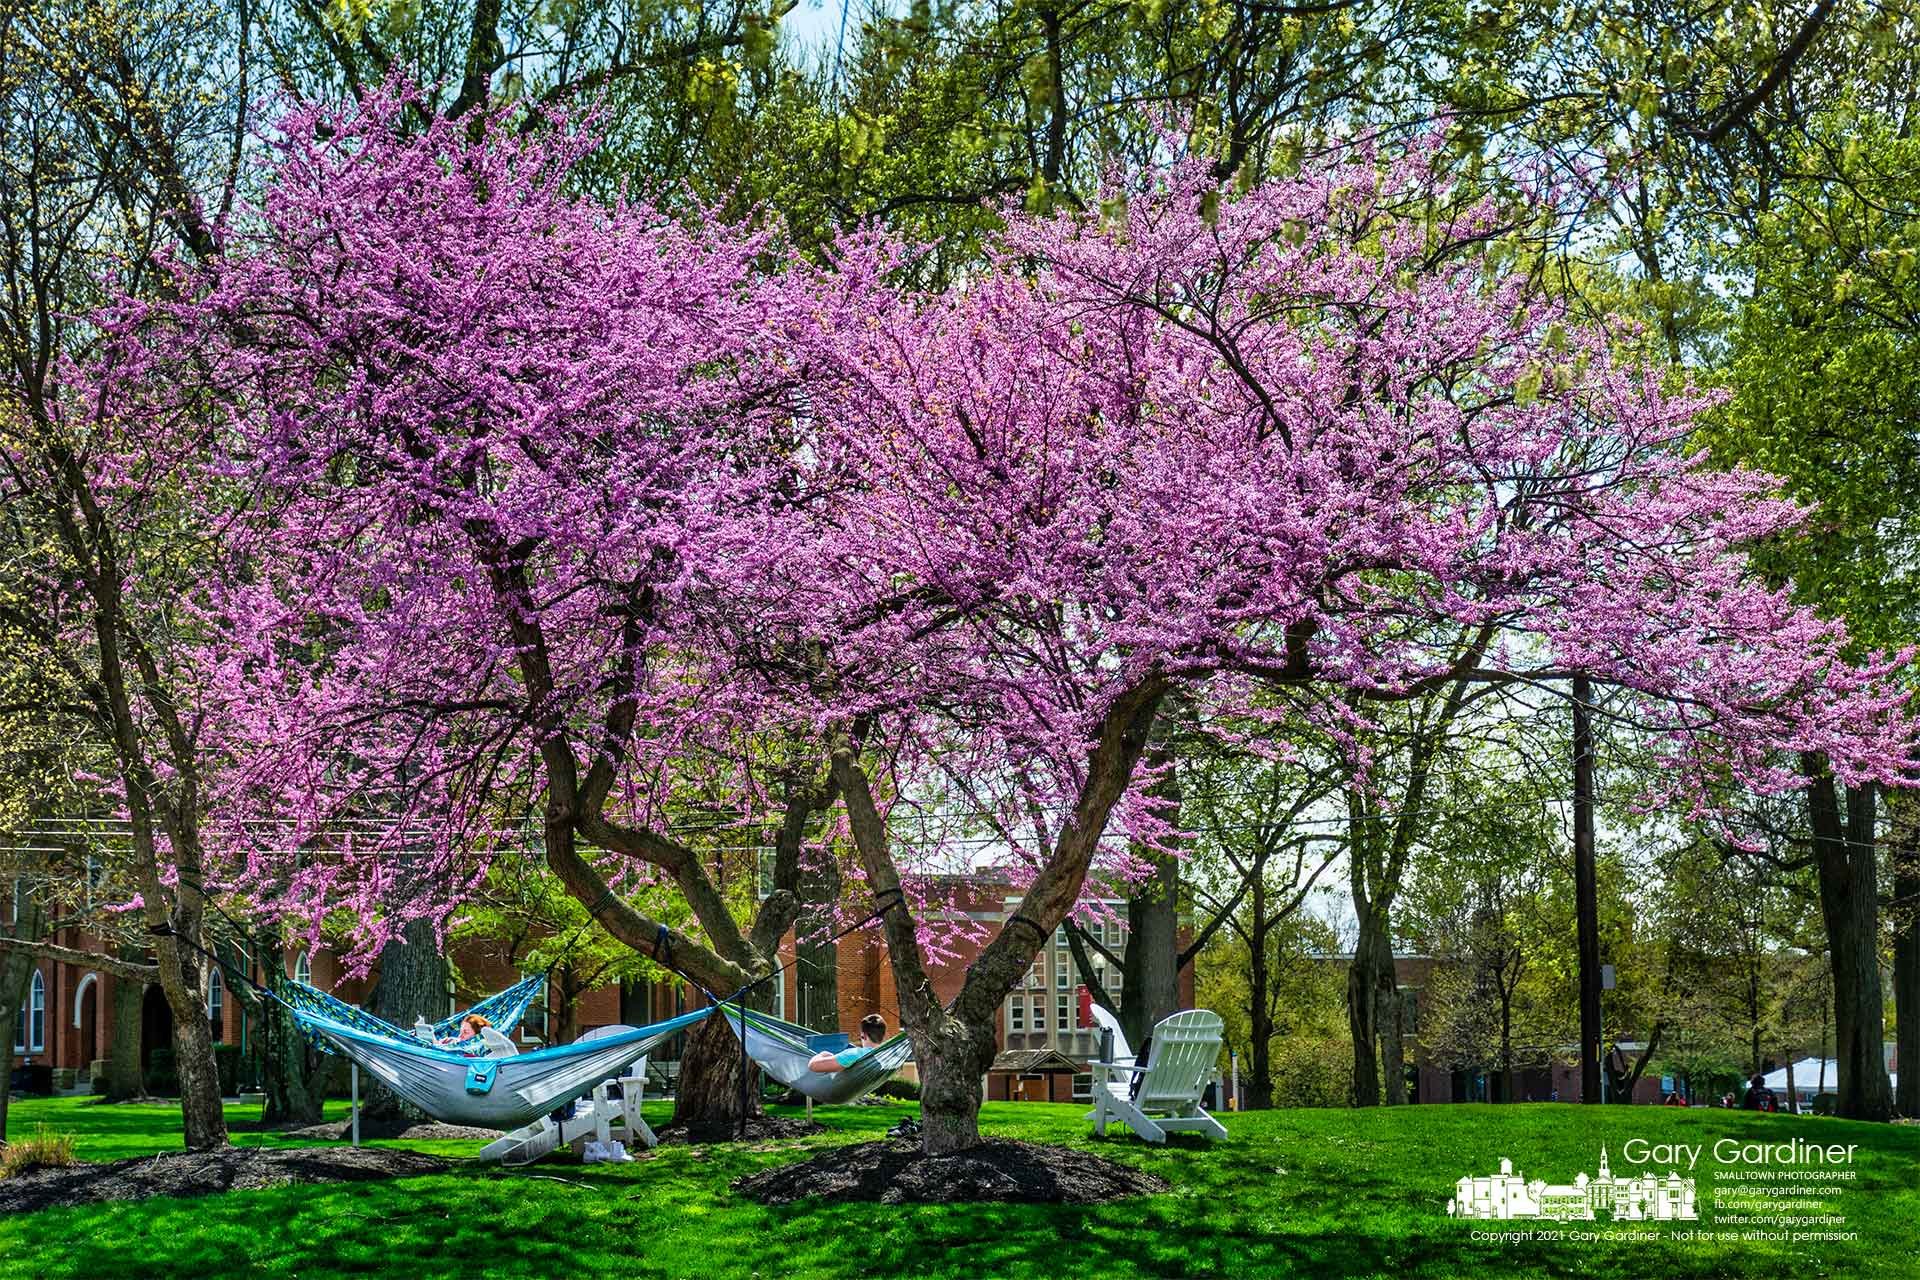 Otterbein students relax and study from hammocks secured to flowering trees at the corner of Grove and West Main. My Final Photo for April 14, 2021.